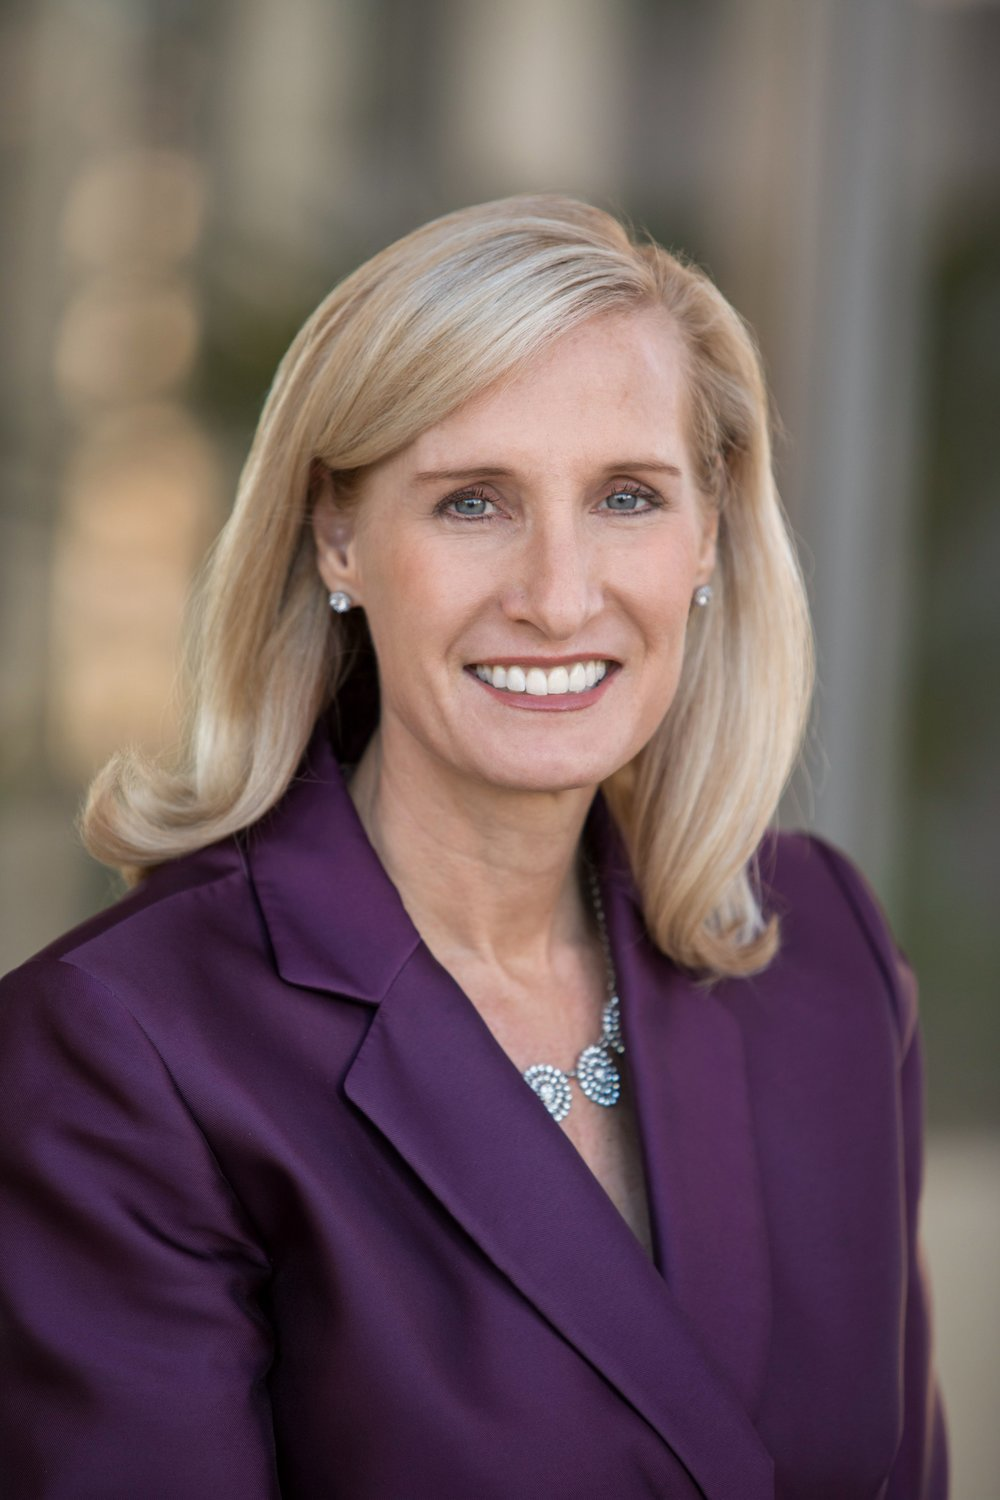 Professional corporate headshot and team photography for Merrill Lynch financial advisors and directors women.